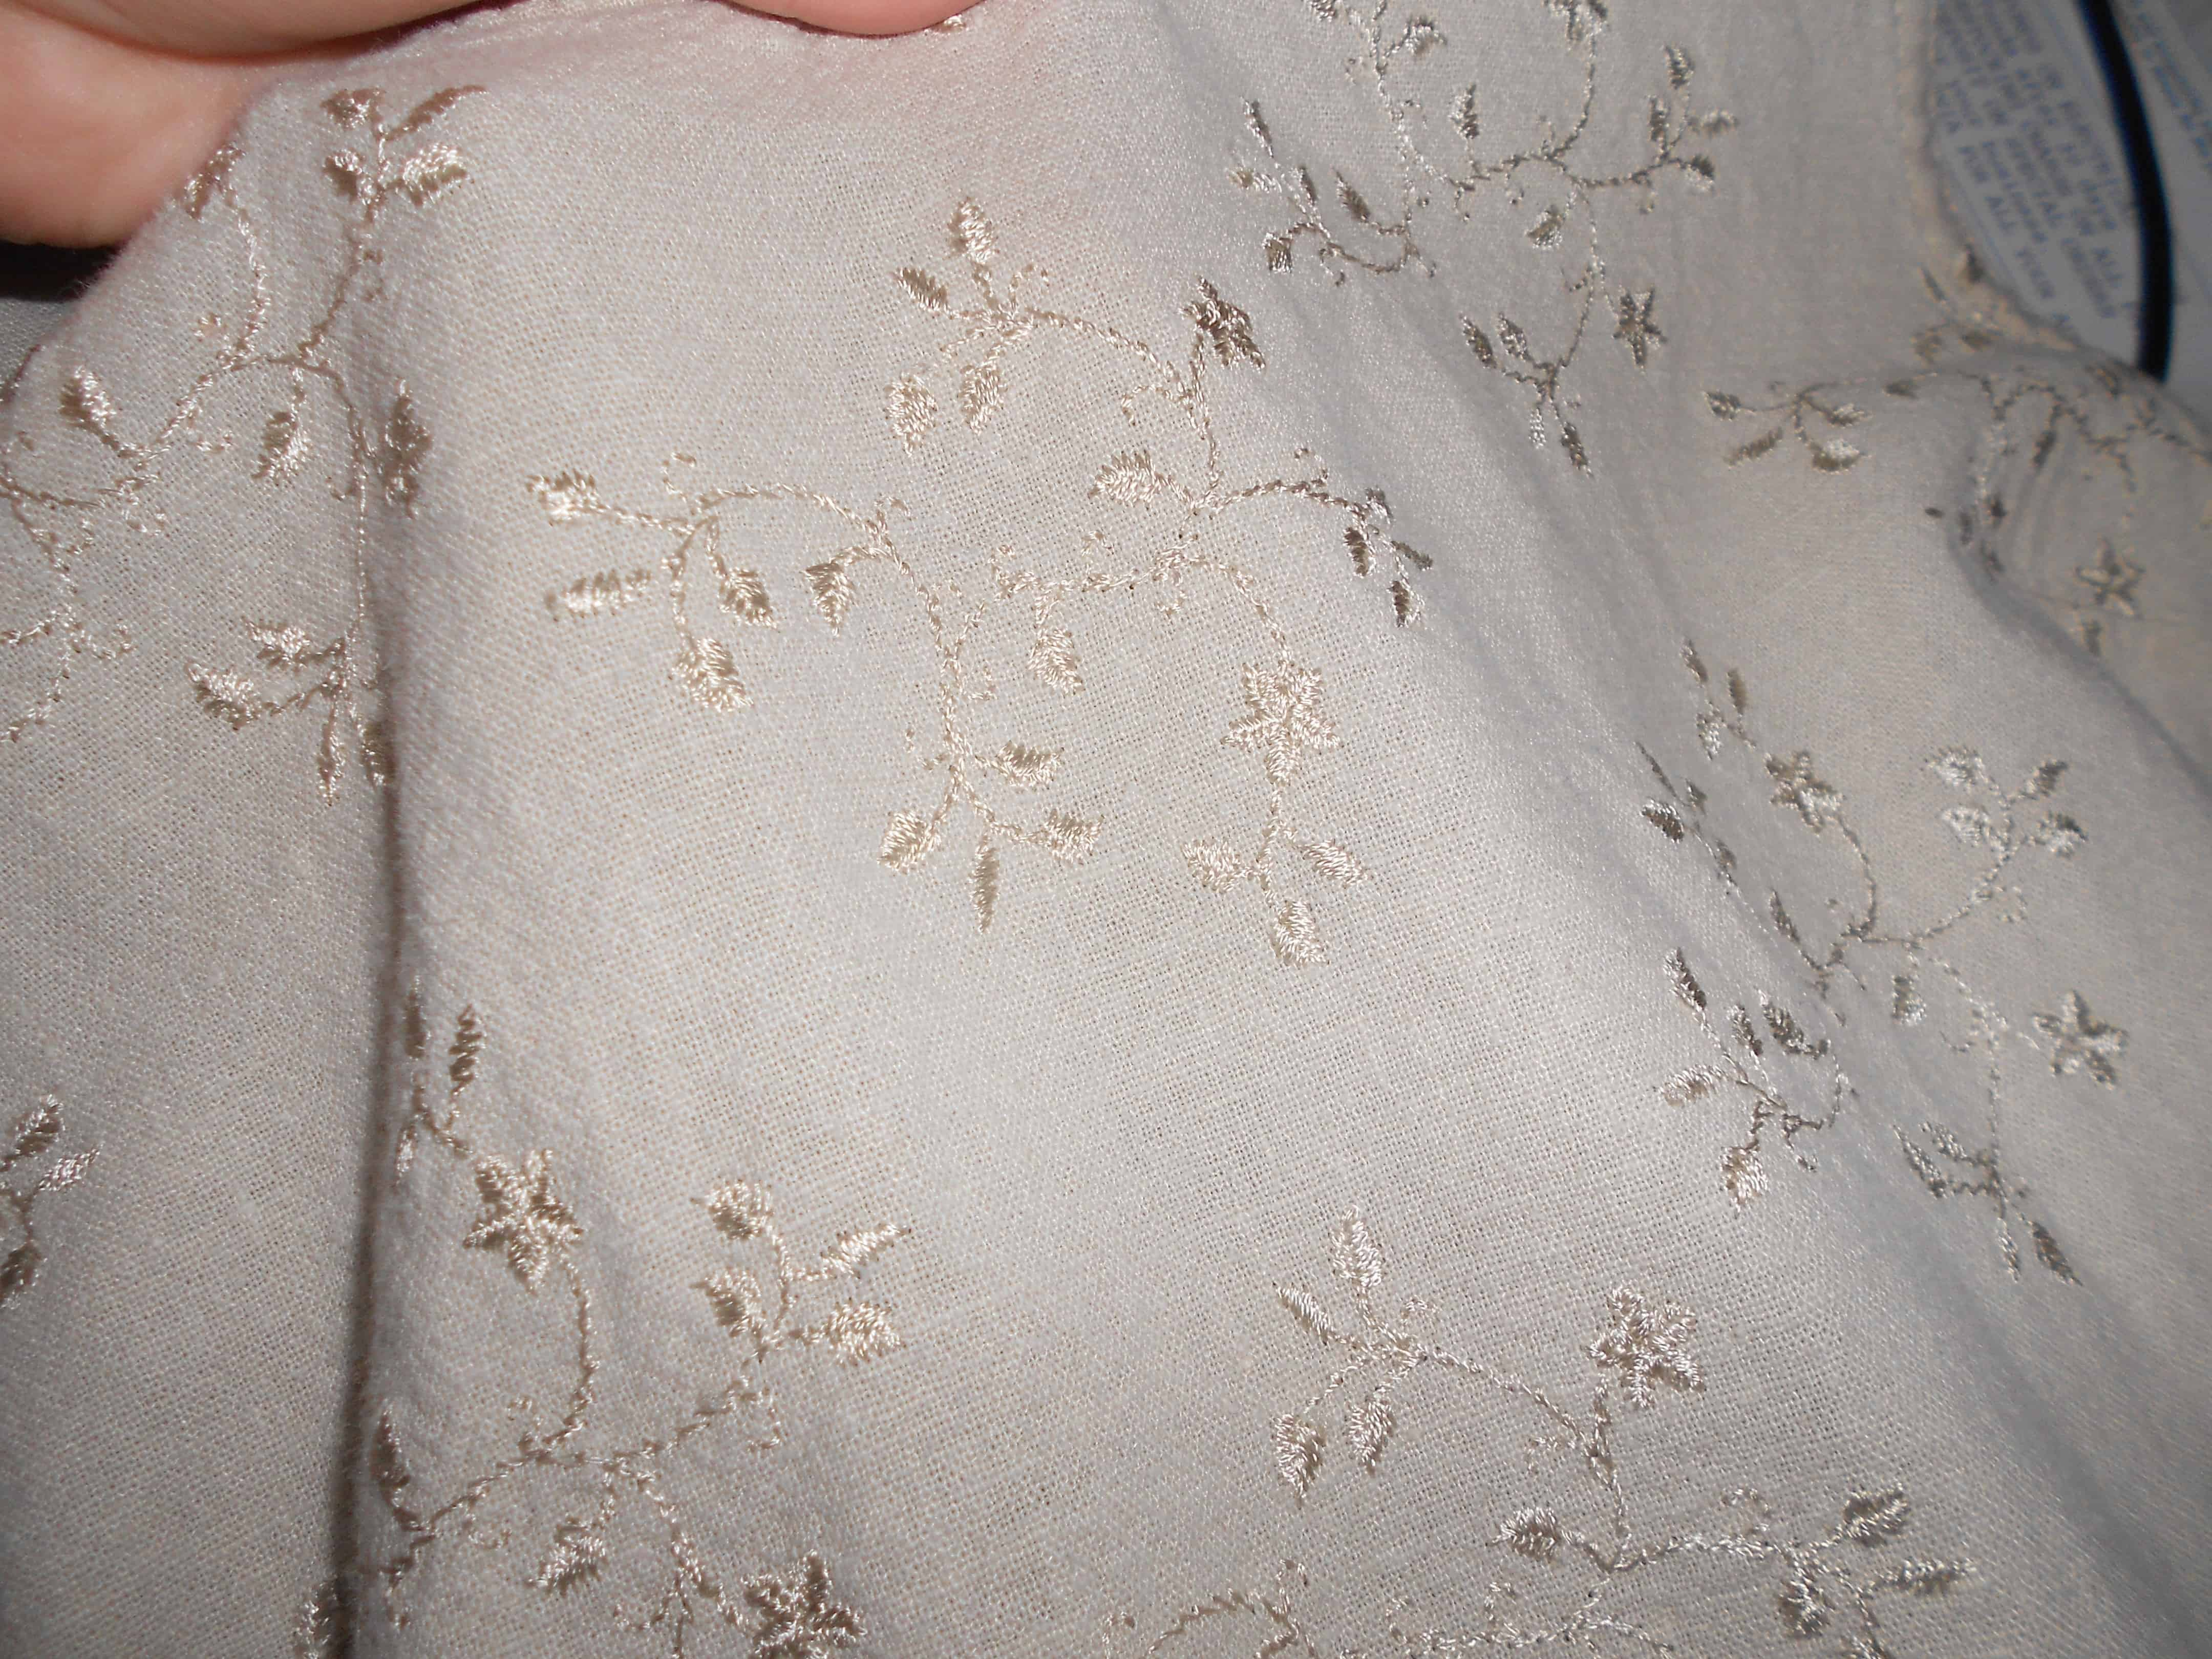 embroidered fabric closeup